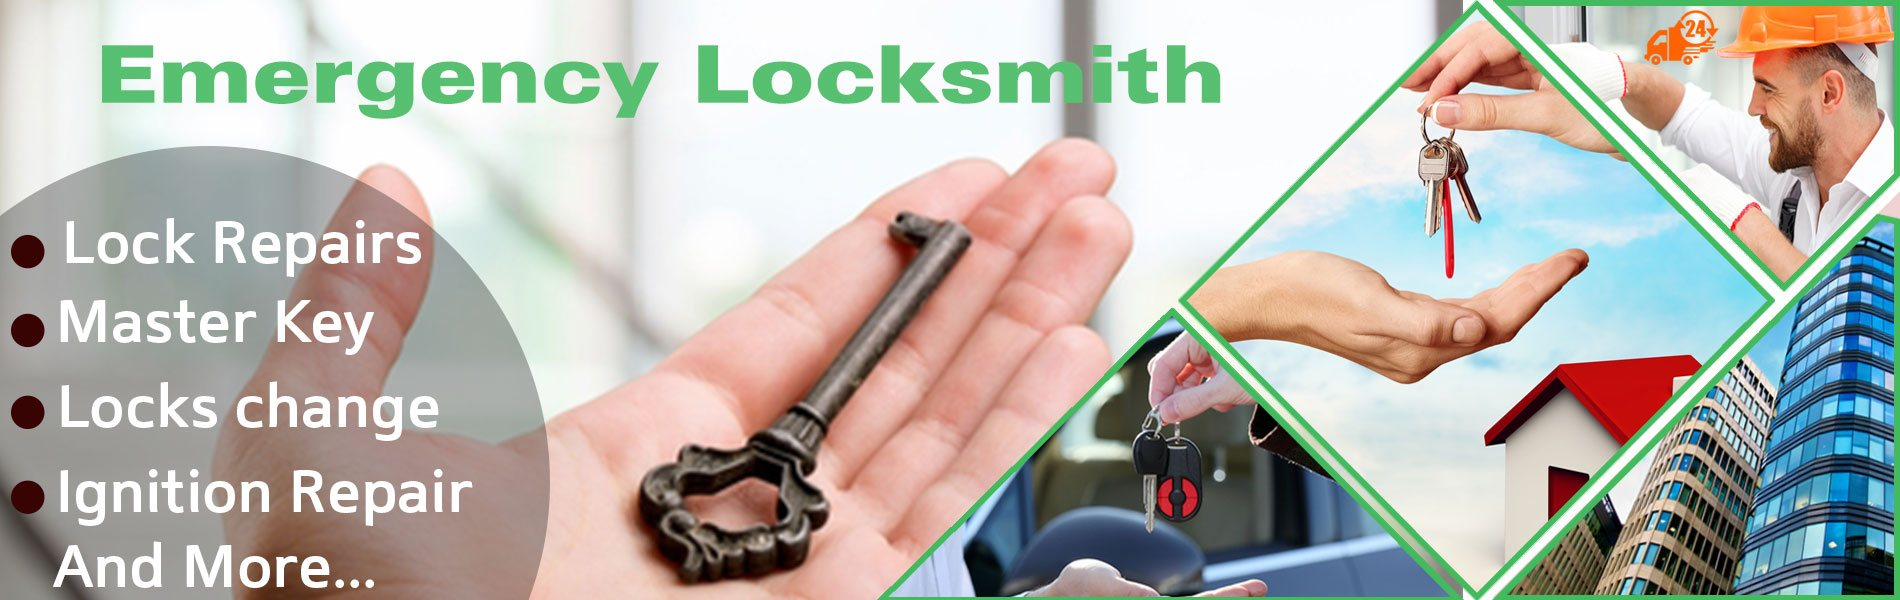 Lock Safe Services Scottsdale, AZ 480-612-9245